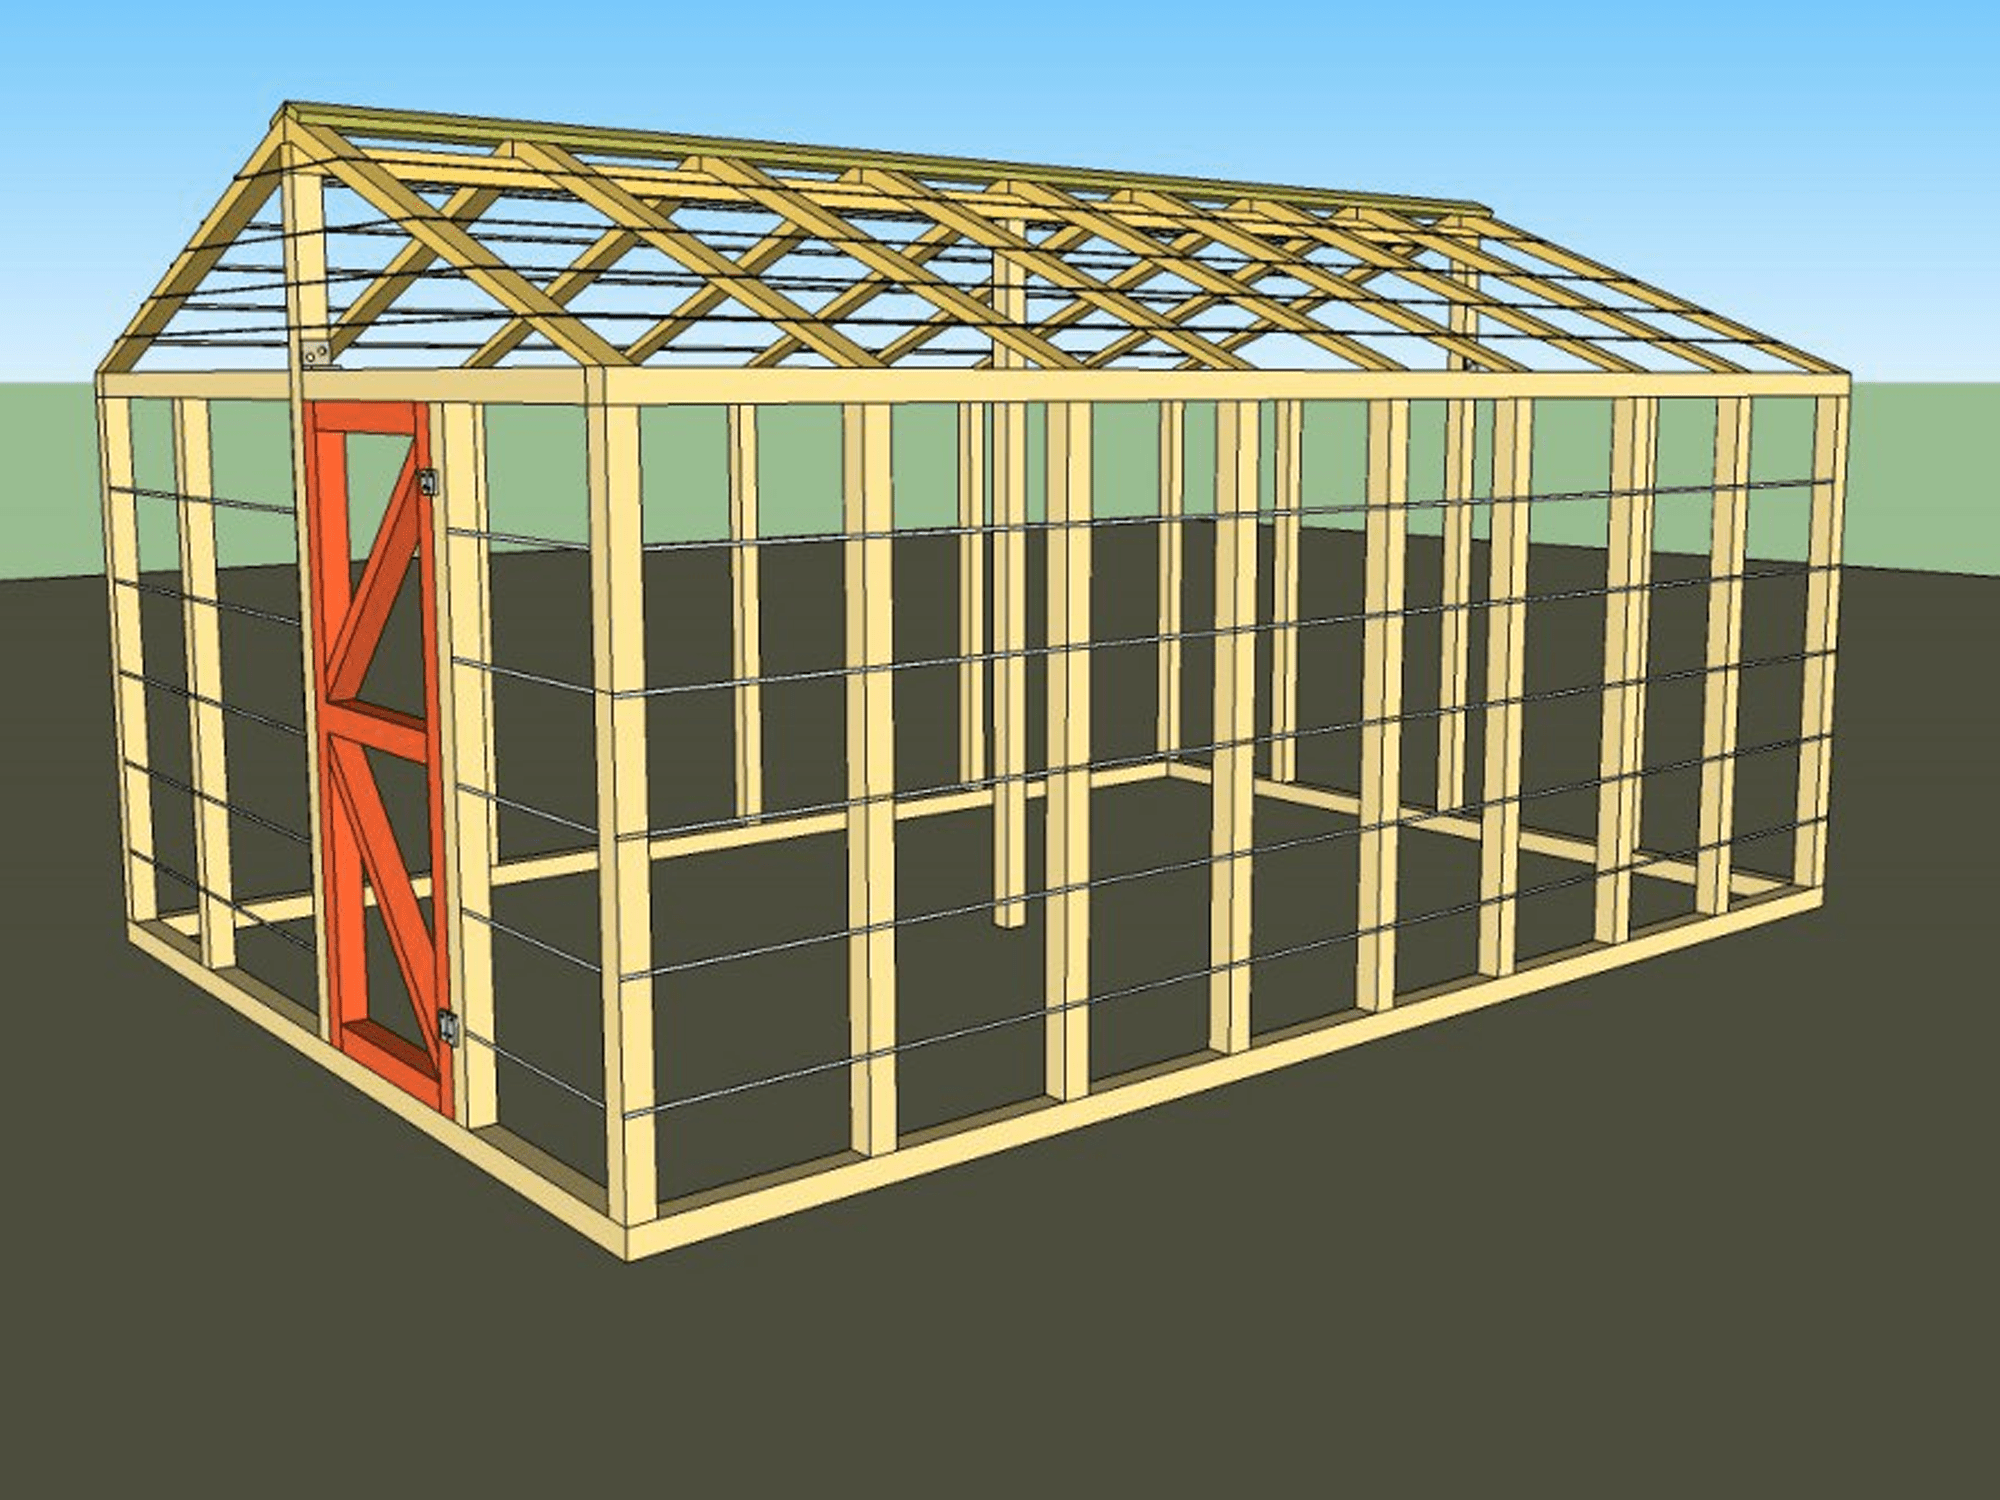 13 Free DIY Greenhouse Plans Greenhouse Backyard Plans on backyard windmill plans, backyard house plans, royal greenhouses of laeken, backyard gazebo plans, backyard permaculture plans, backyard studio plans, backyard swing plans, backyard organic gardening, backyard pergola plans, sustainable gardening, seawater greenhouse, backyard pool plans, backyard shop plans, backyard home, backyard playhouse plans, cold frame, backyard chapel plans, backyard shed plans, backyard golf course plans, green wall, backyard gym plans, backyard labyrinth plans, backyard garage plans, backyard fireplace plans,